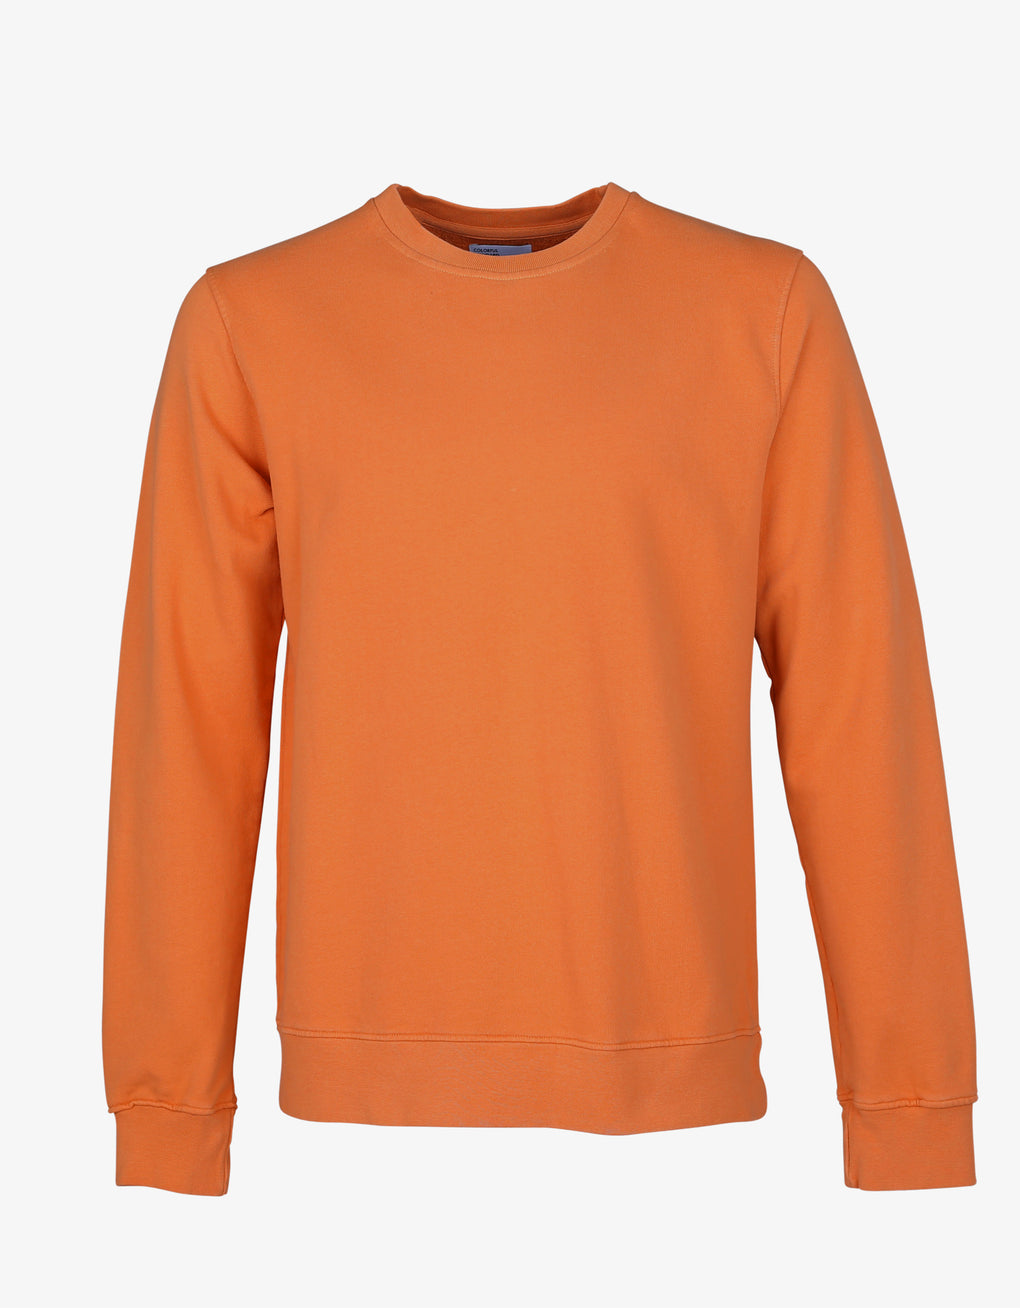 Colorful Standard Classic Organic Crew Crewneck Burned Orange